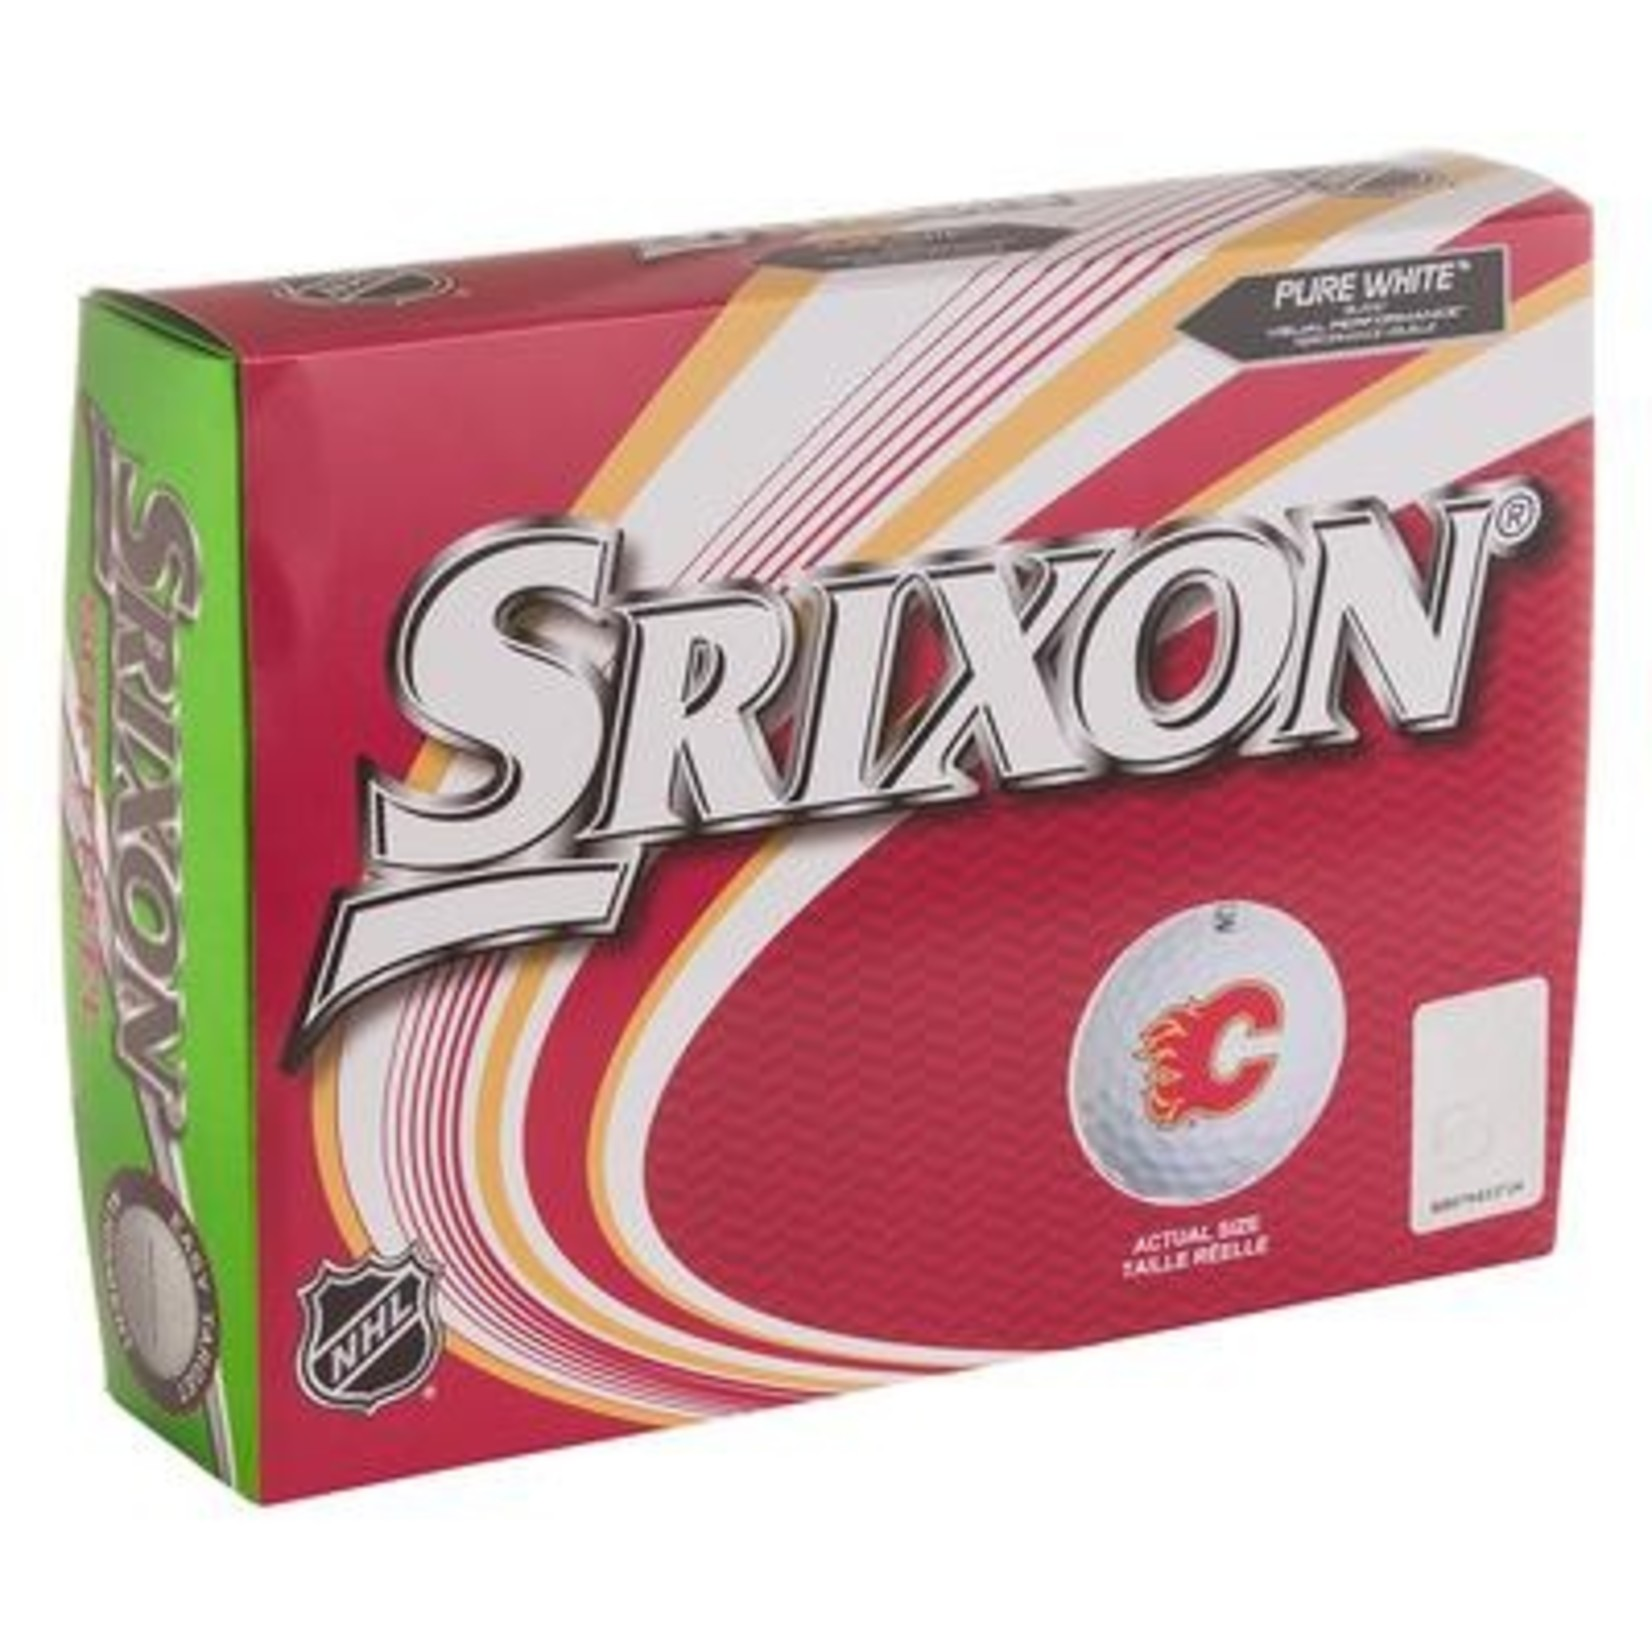 Srixon Srixon Soft Feel NHL Dozen